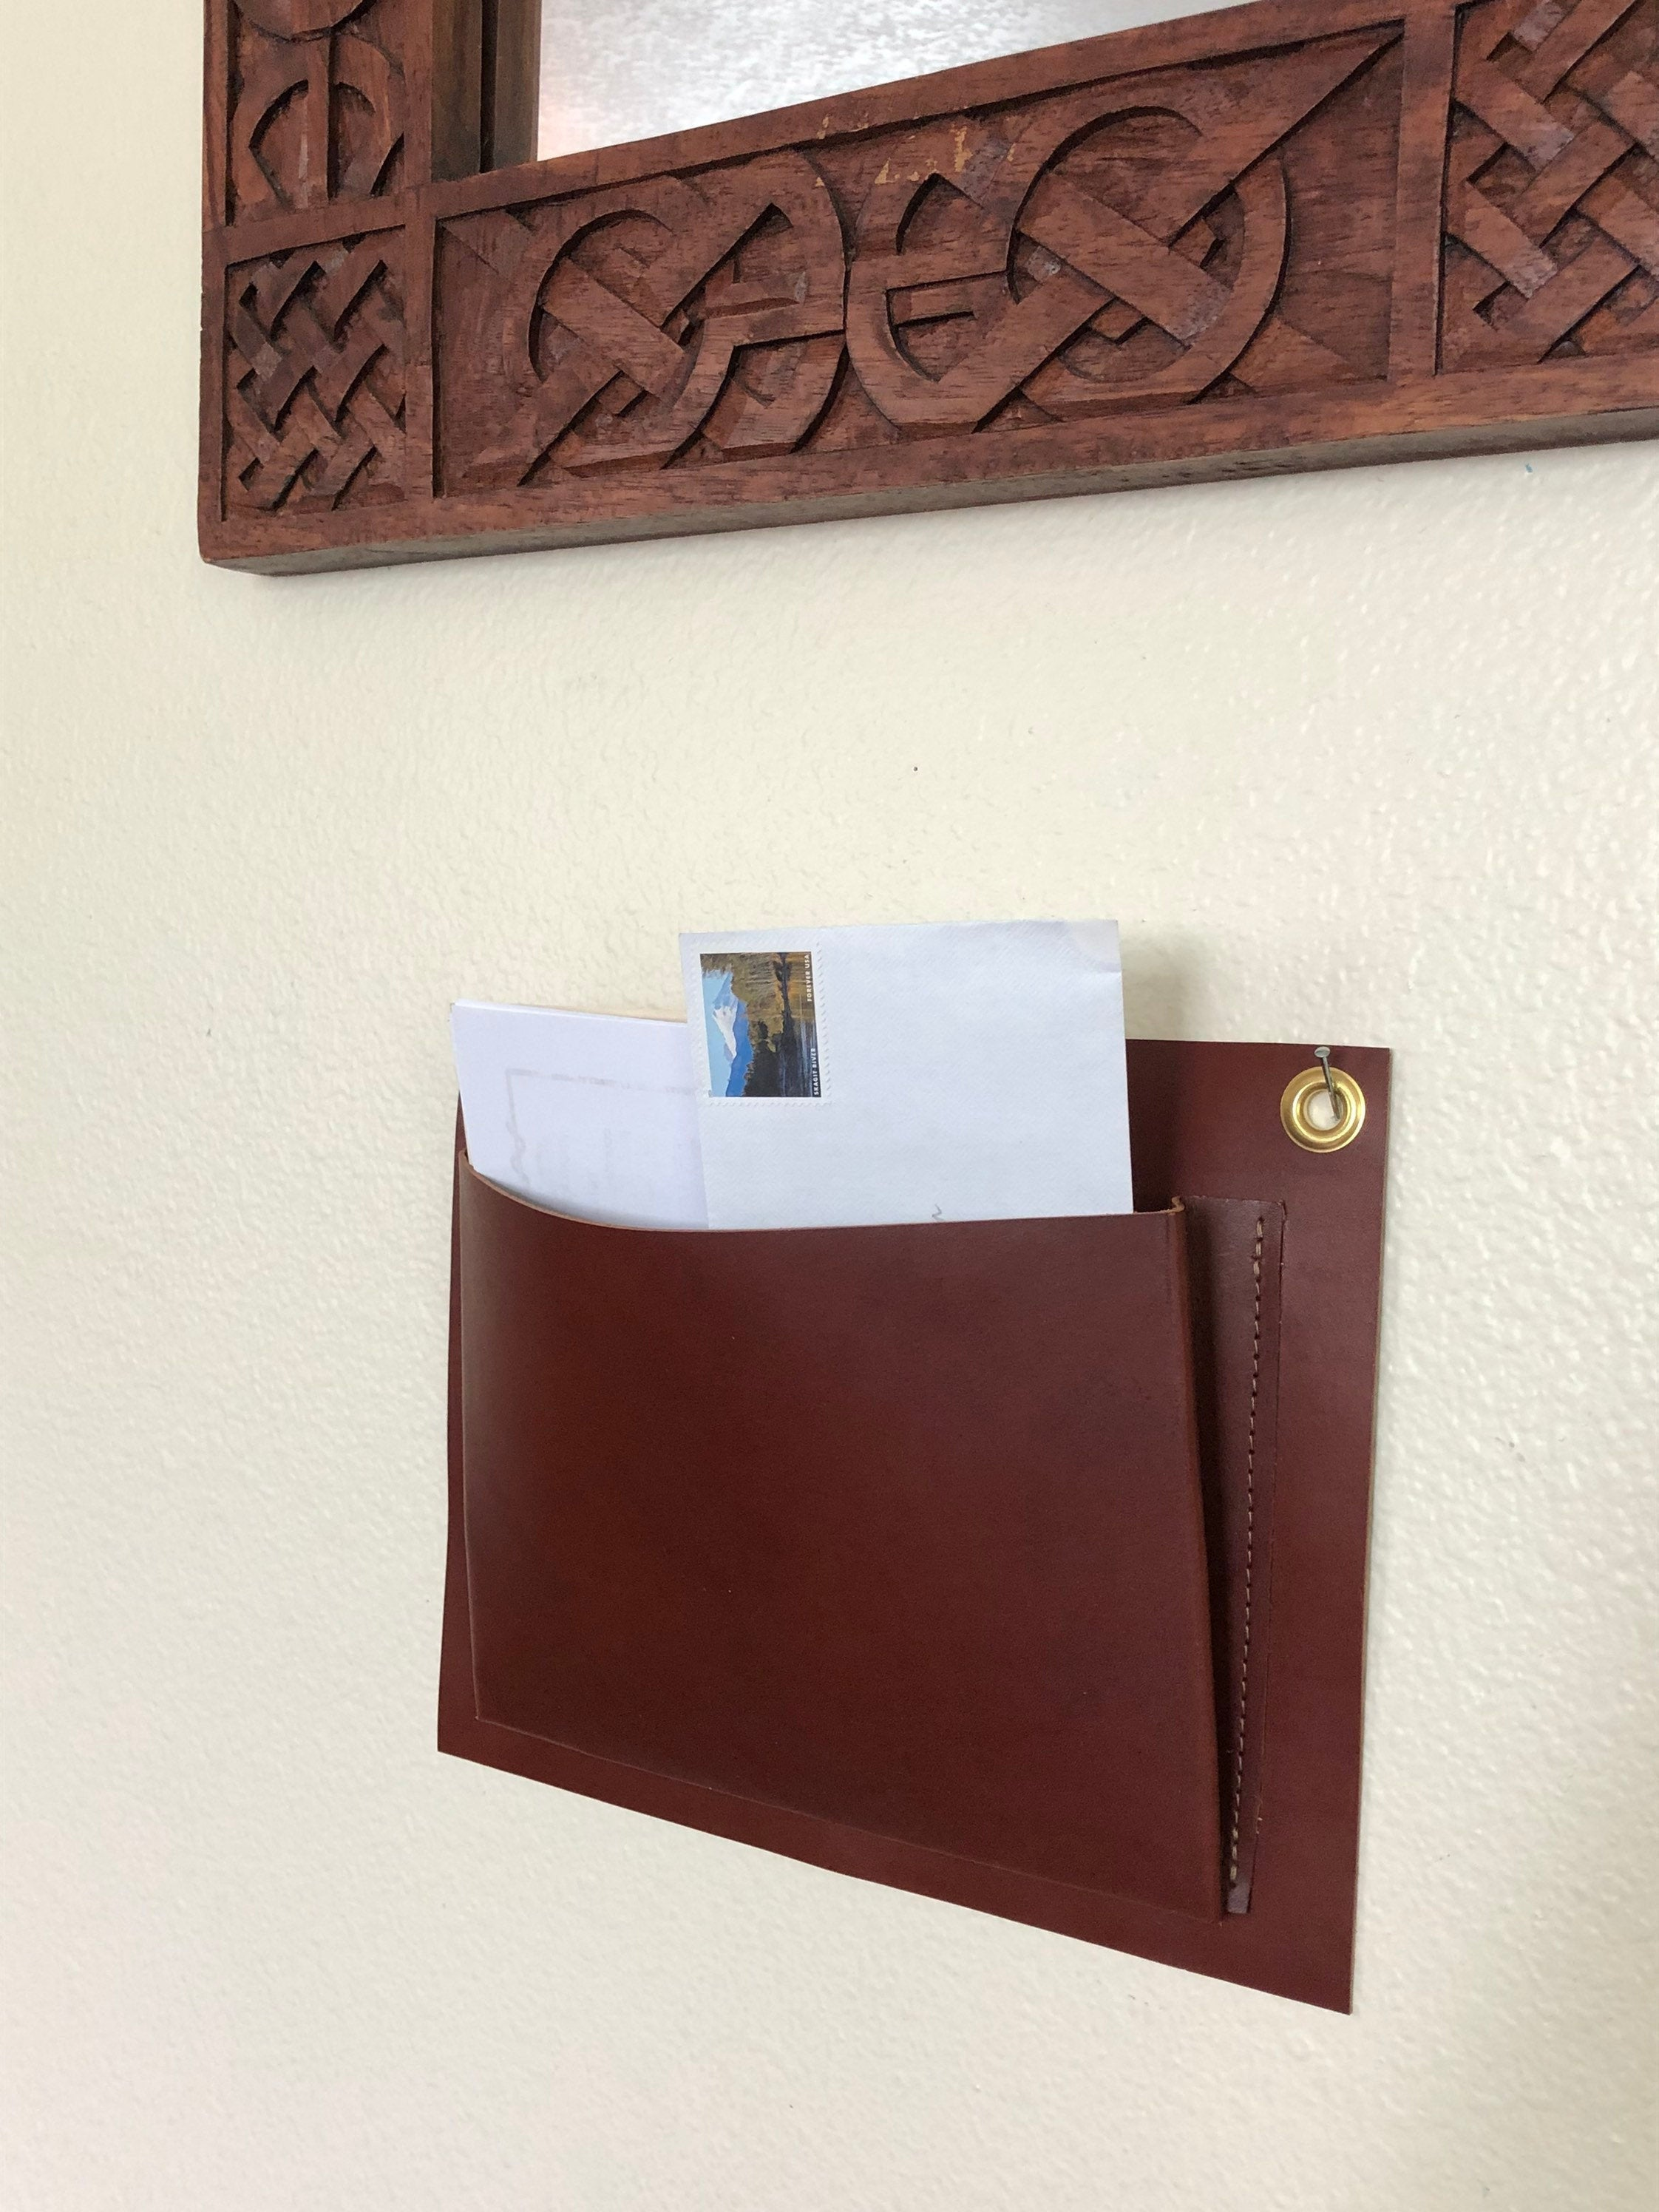 Brown leather wall organizer hangs under mirror